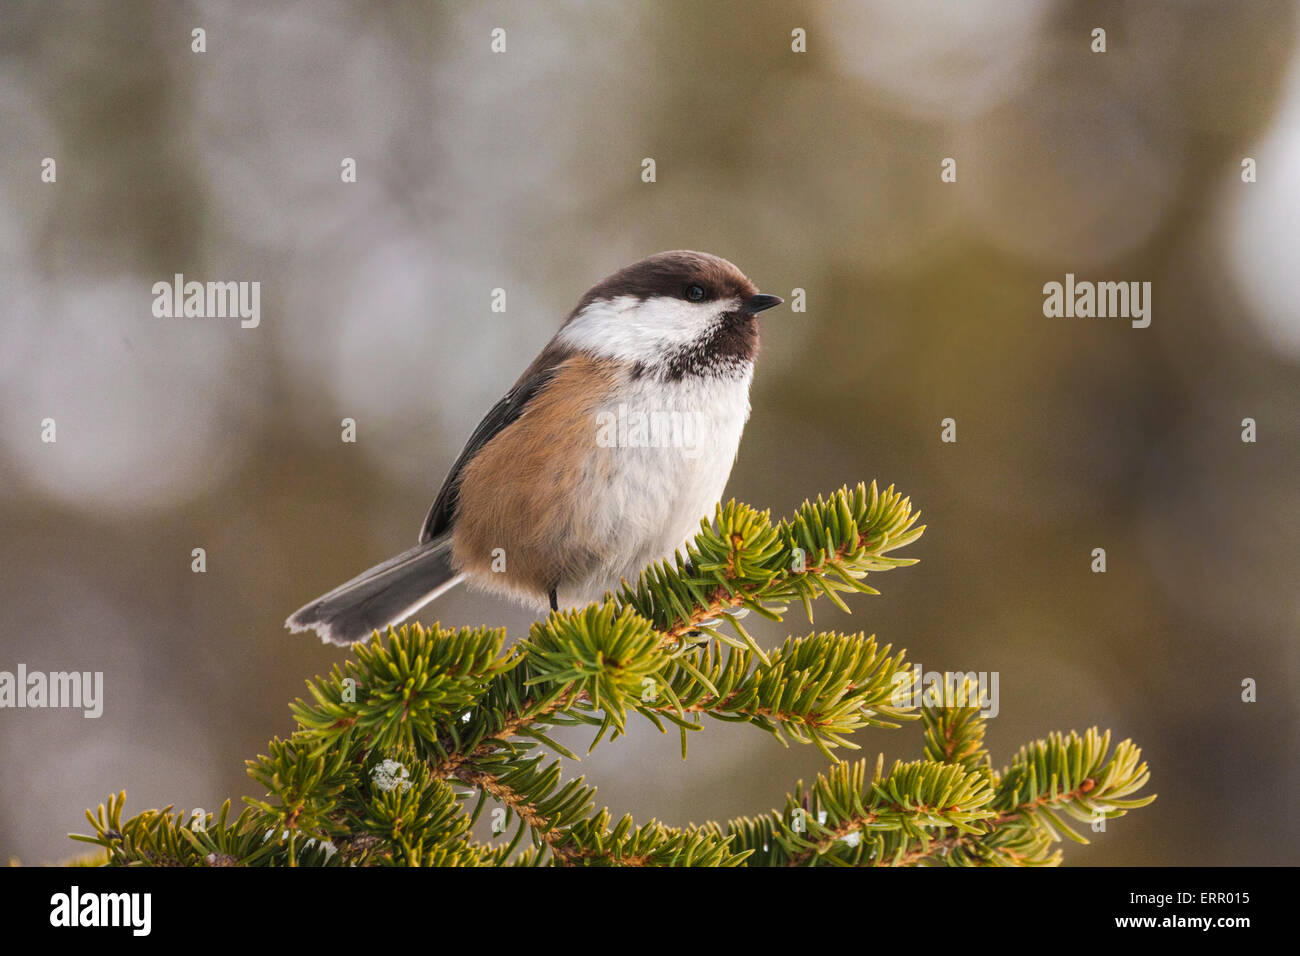 Portrait of Grey-headed Chickadee sitting in a spruce tree - Stock Image